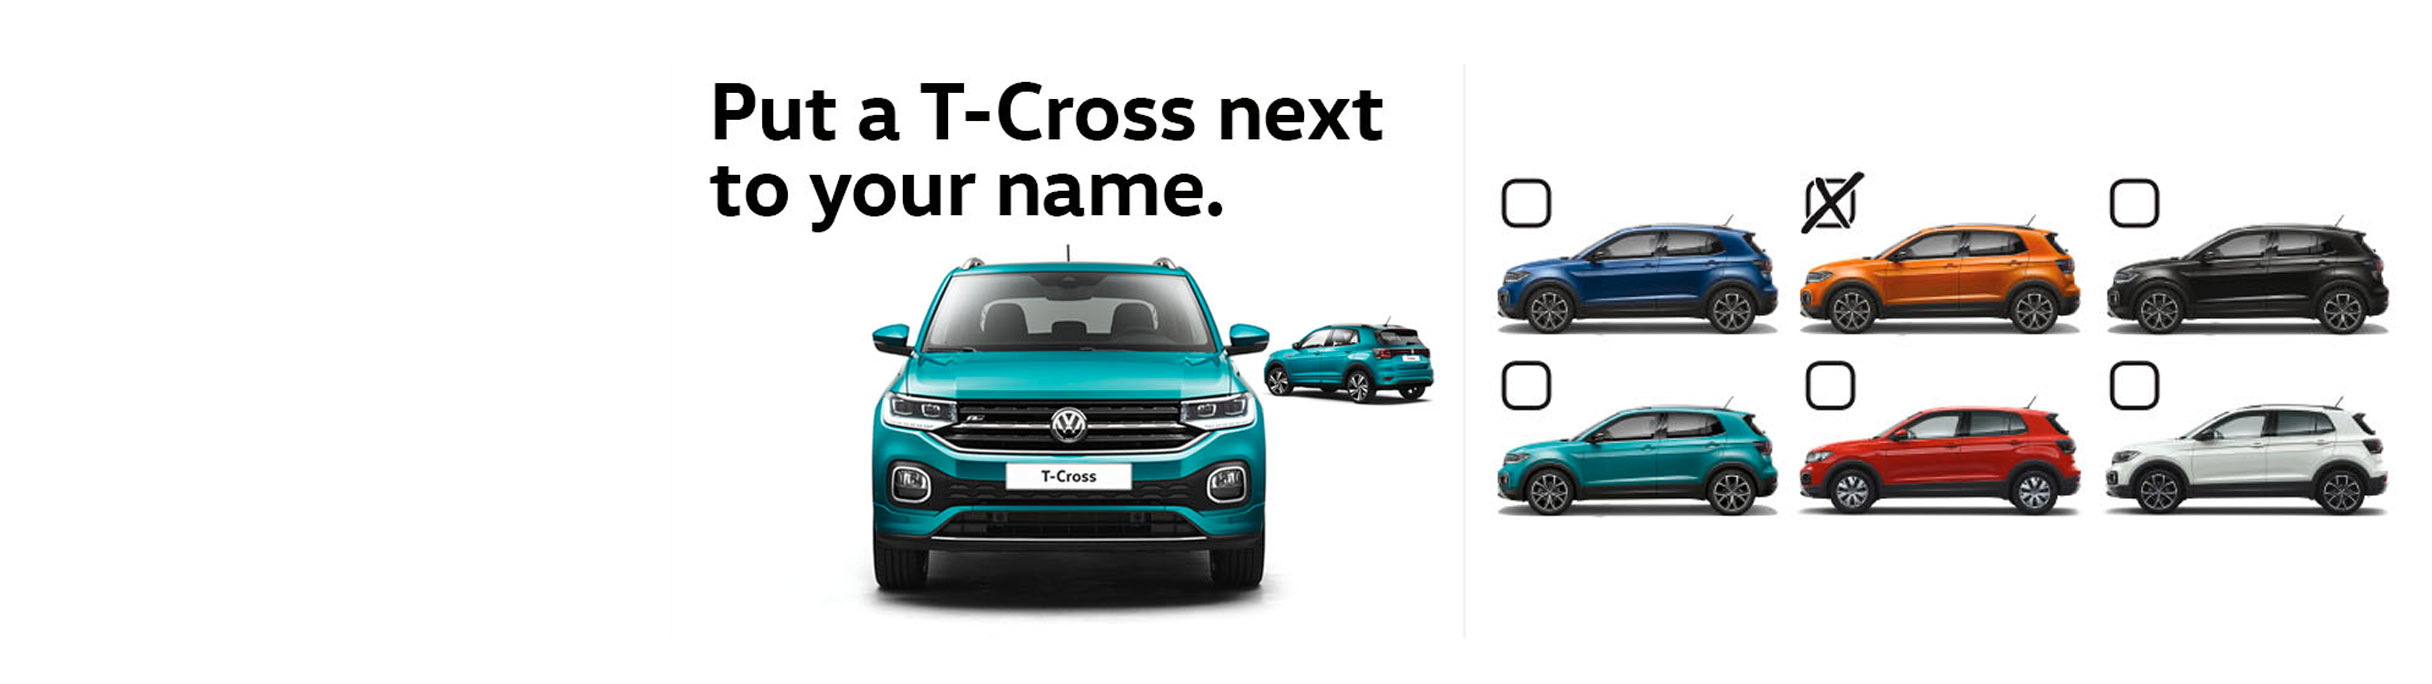 Put a T-Cross next to your name banner